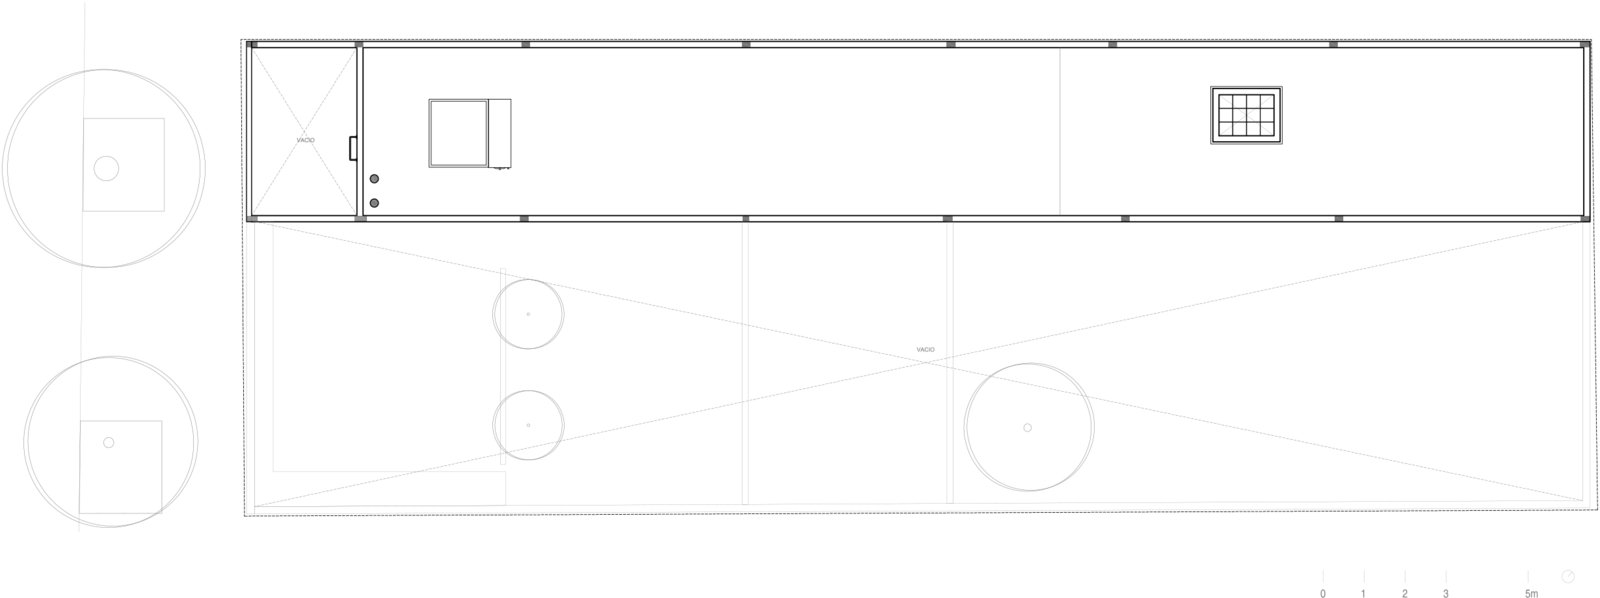 CEILING PLAN  Casa Campestre 107 by DCPP